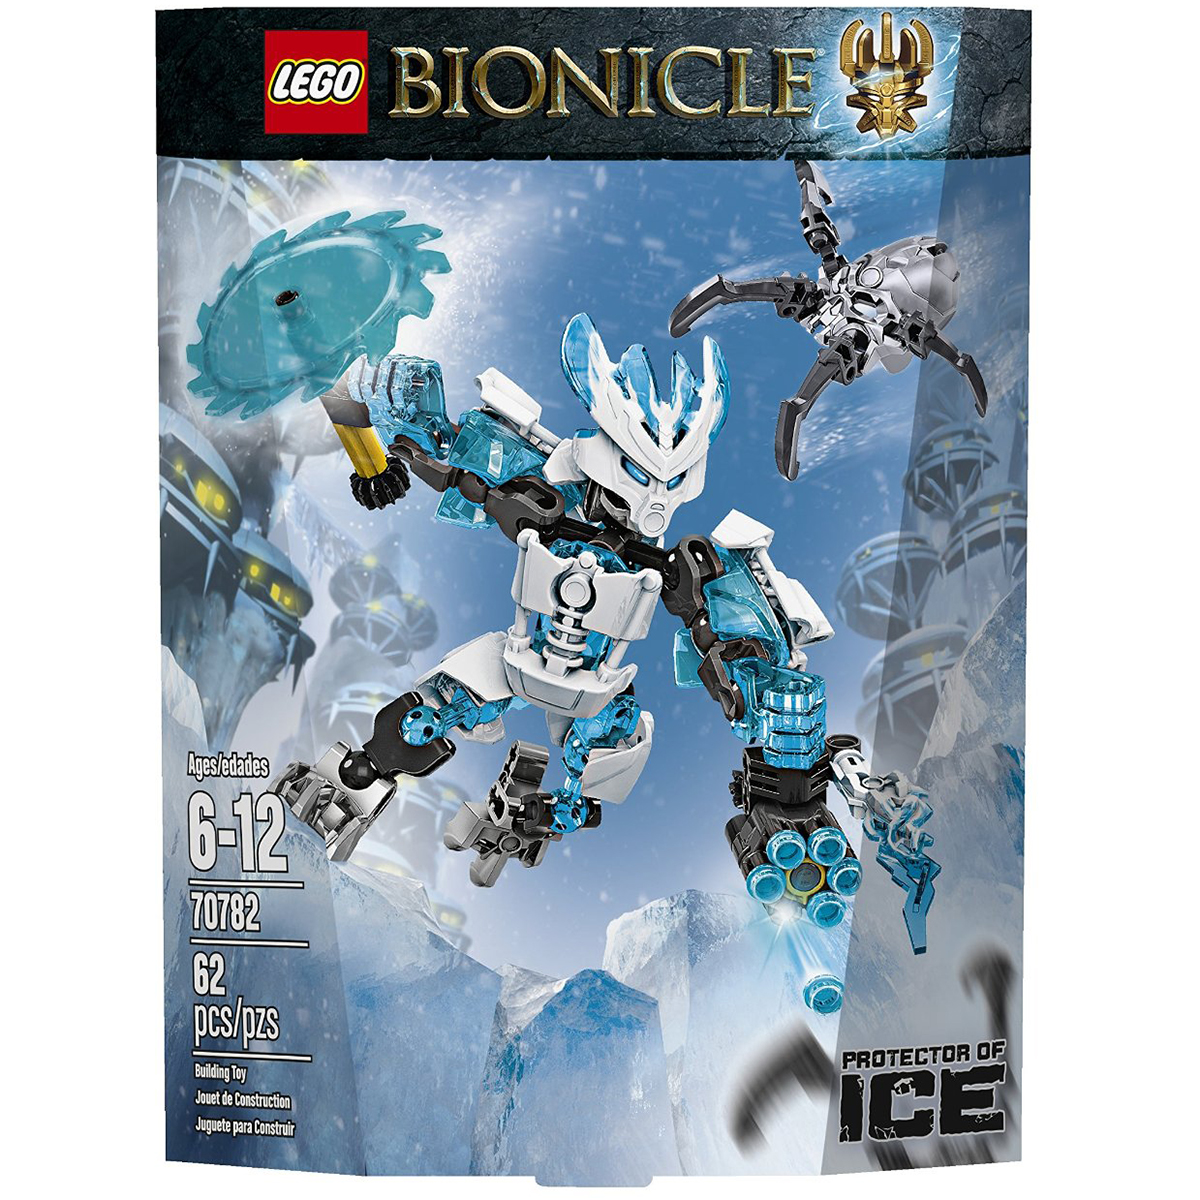 Lego Bionicle - Ho ve bang 70782